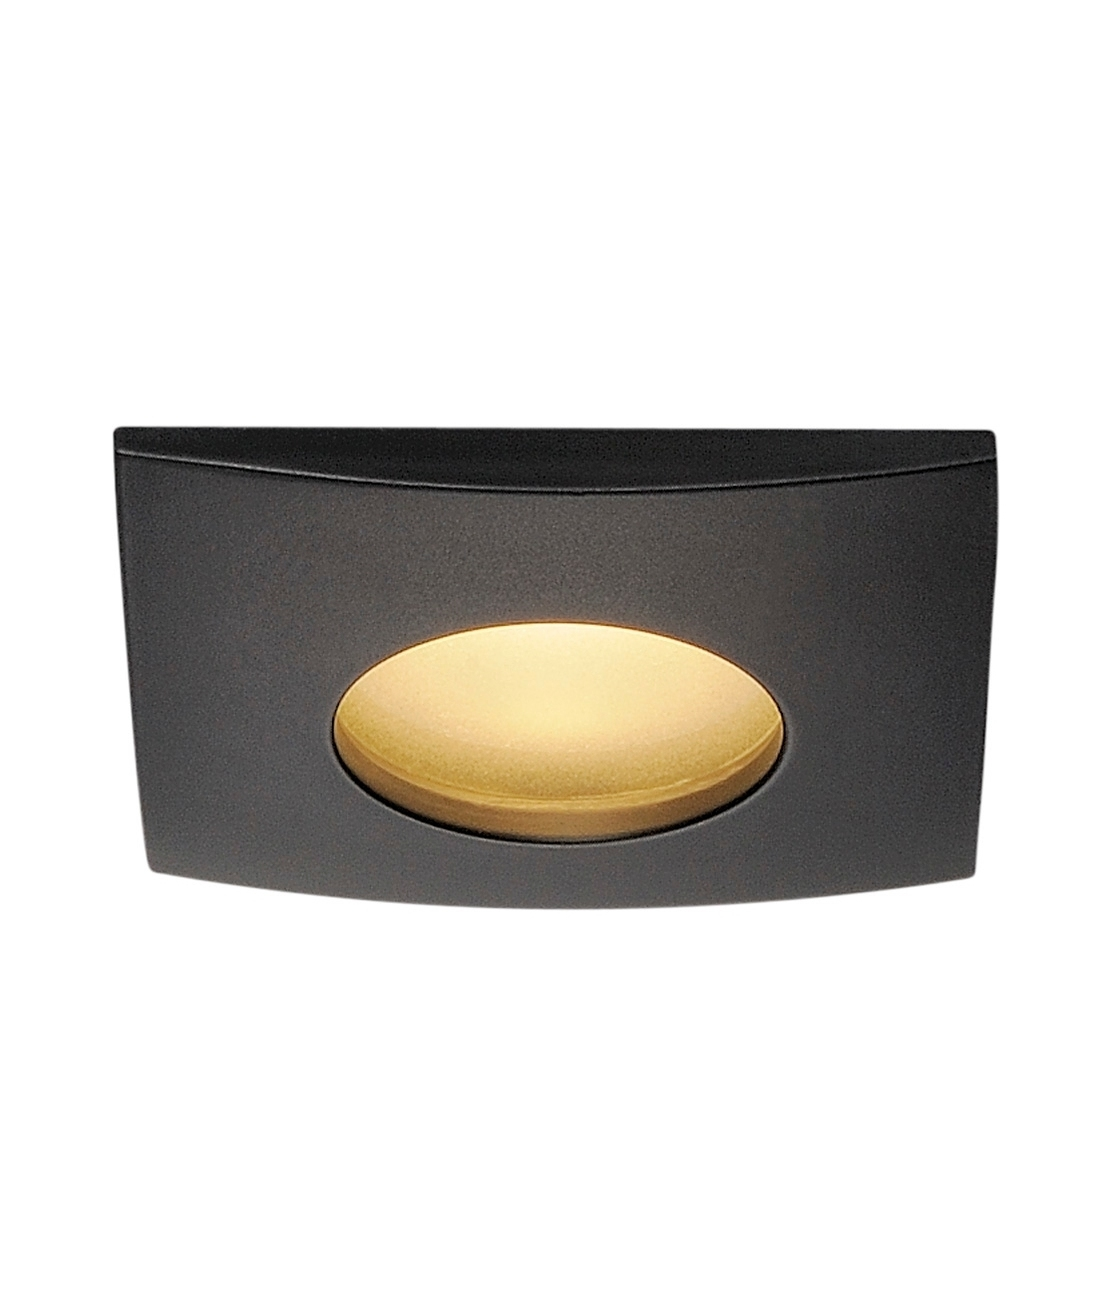 Led Outdoor Ceiling Light With Pir